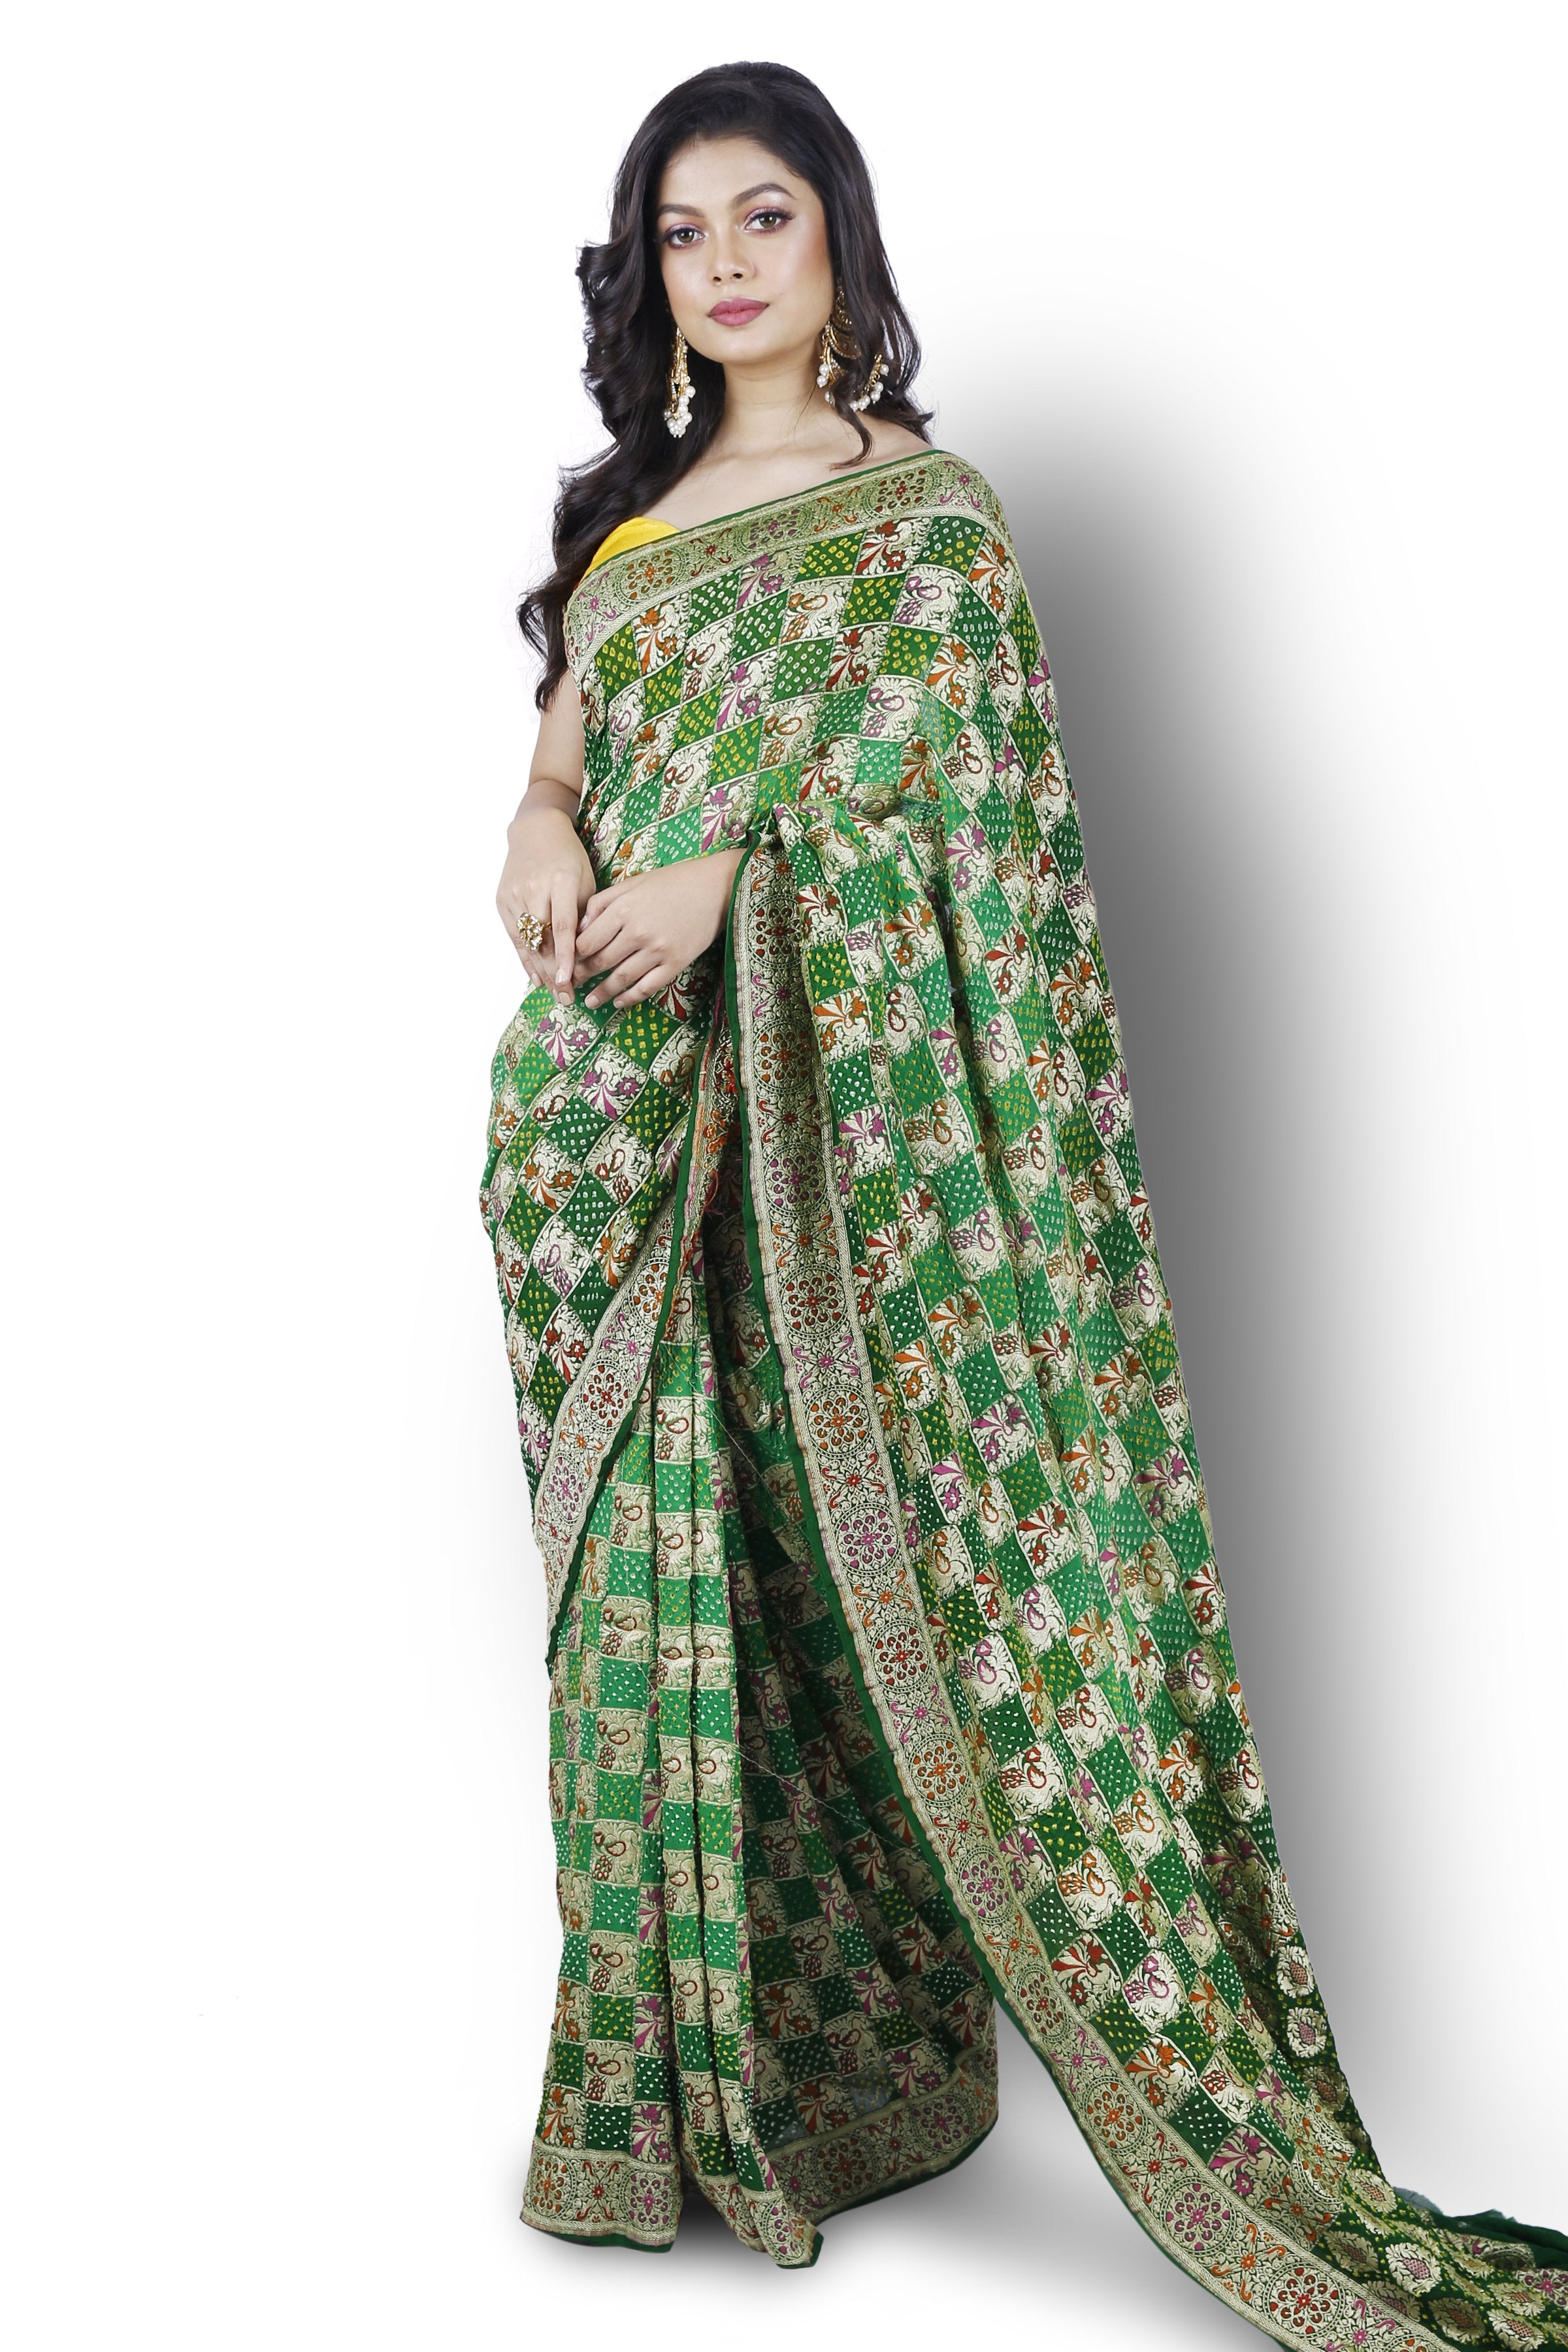 Green Bandhani Saree with Meenakari detailing